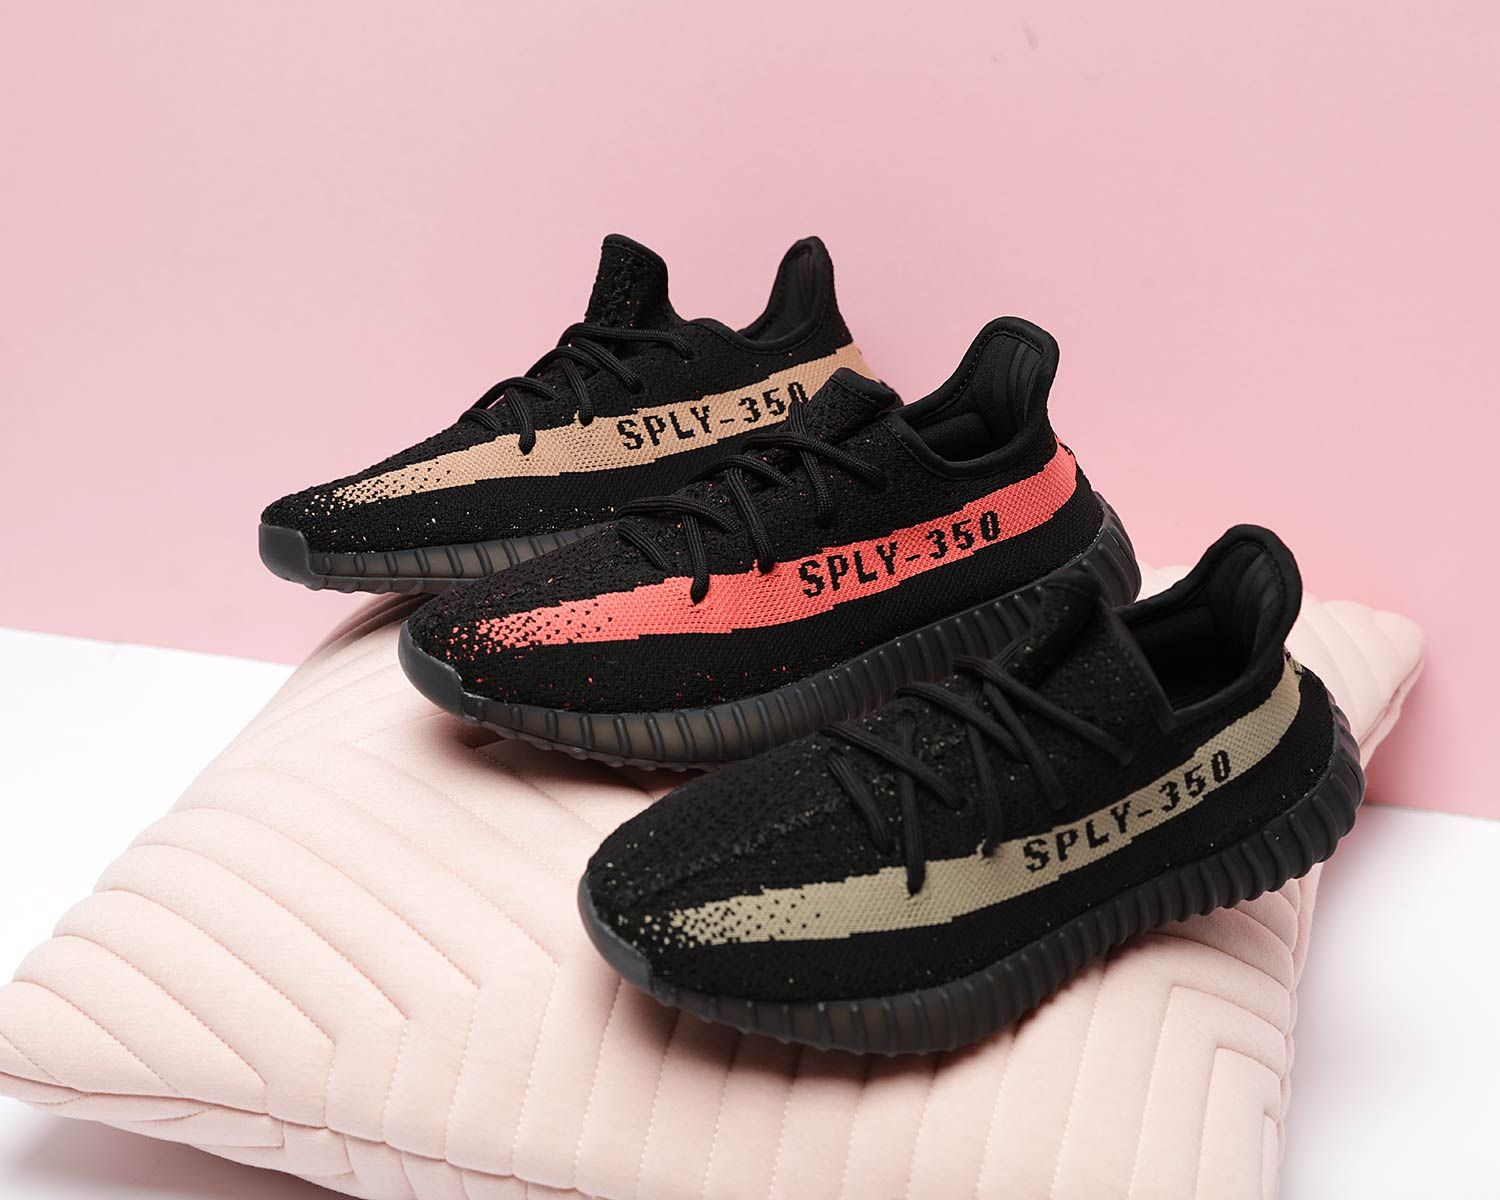 adidas Officially Announces The Restock Of The Yeezy Boost 350 V2